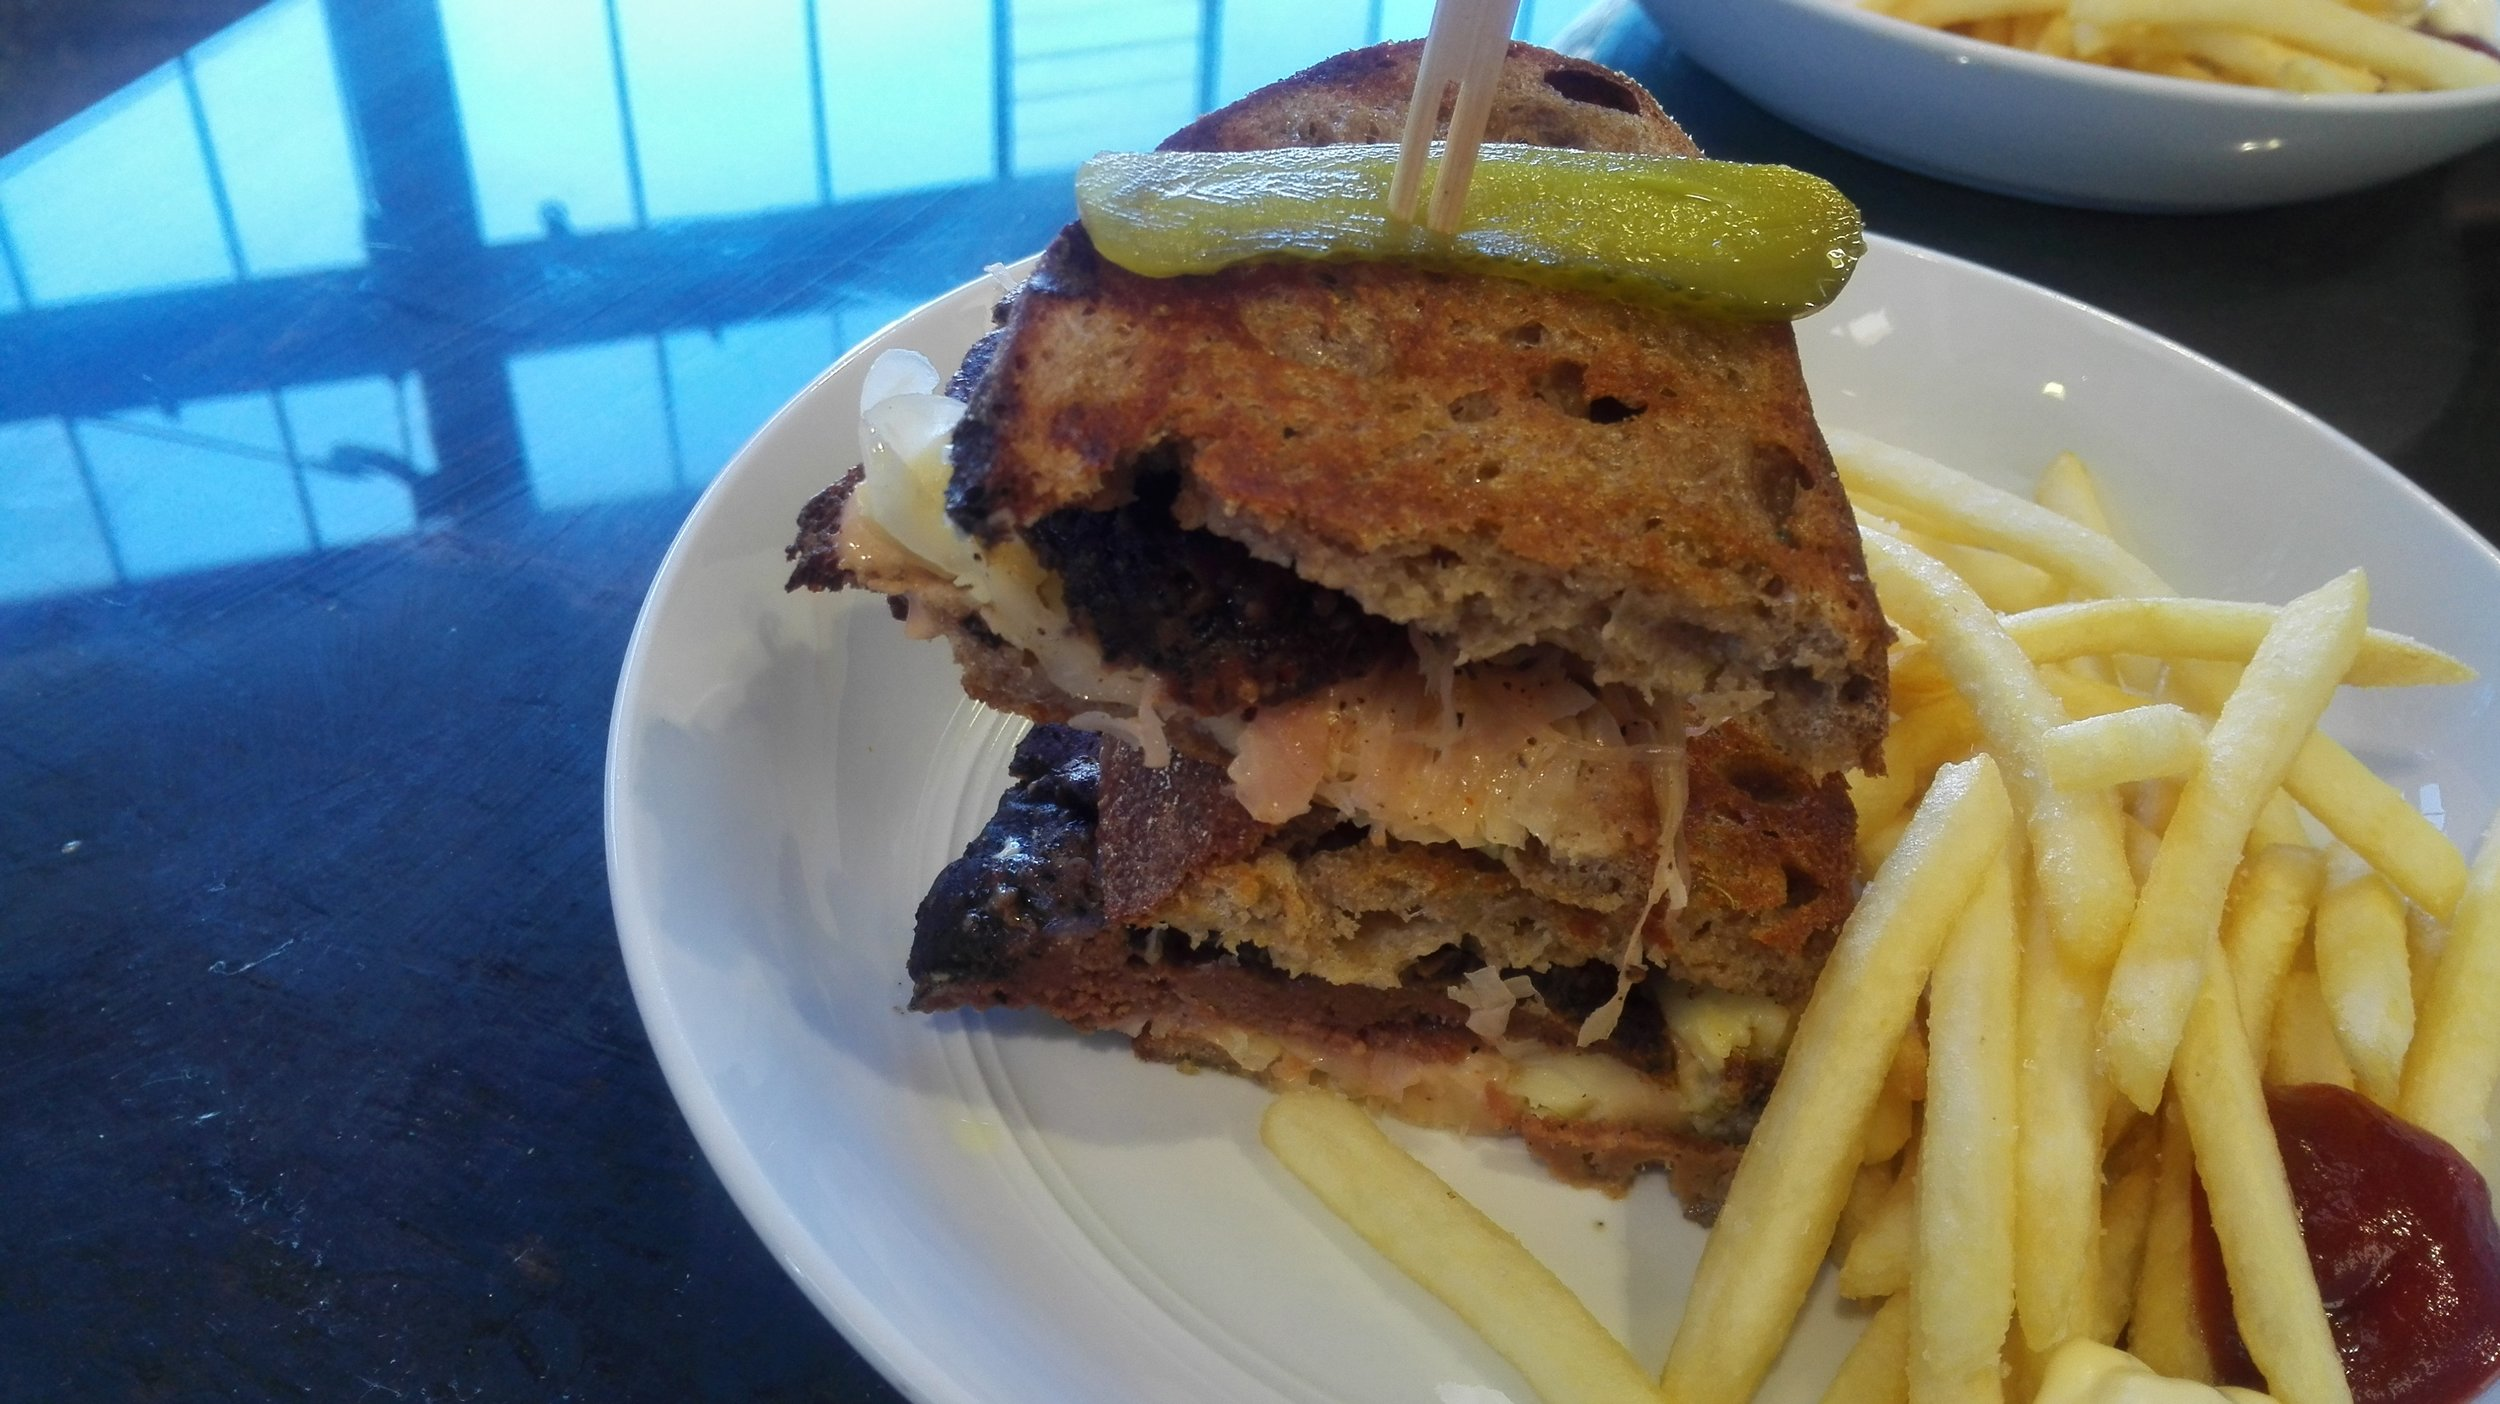 Reuben sandwich at Grater Goods